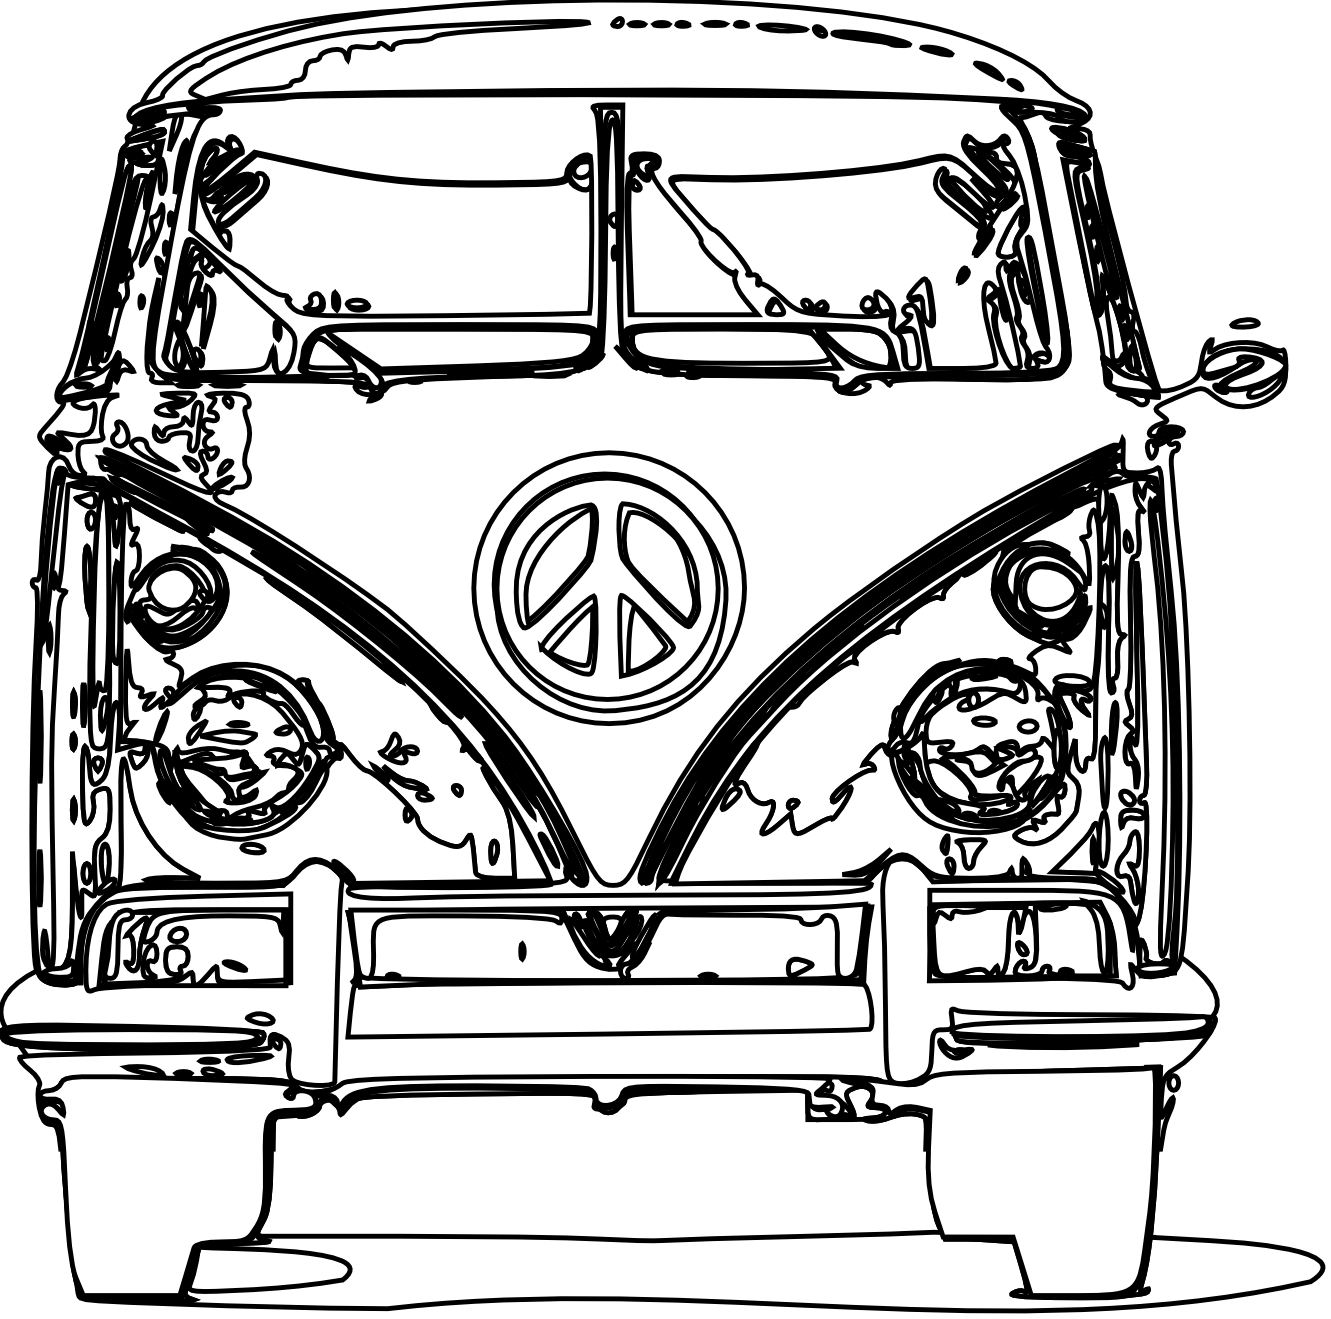 Minivan clipart black and white. Art clip clipartist net